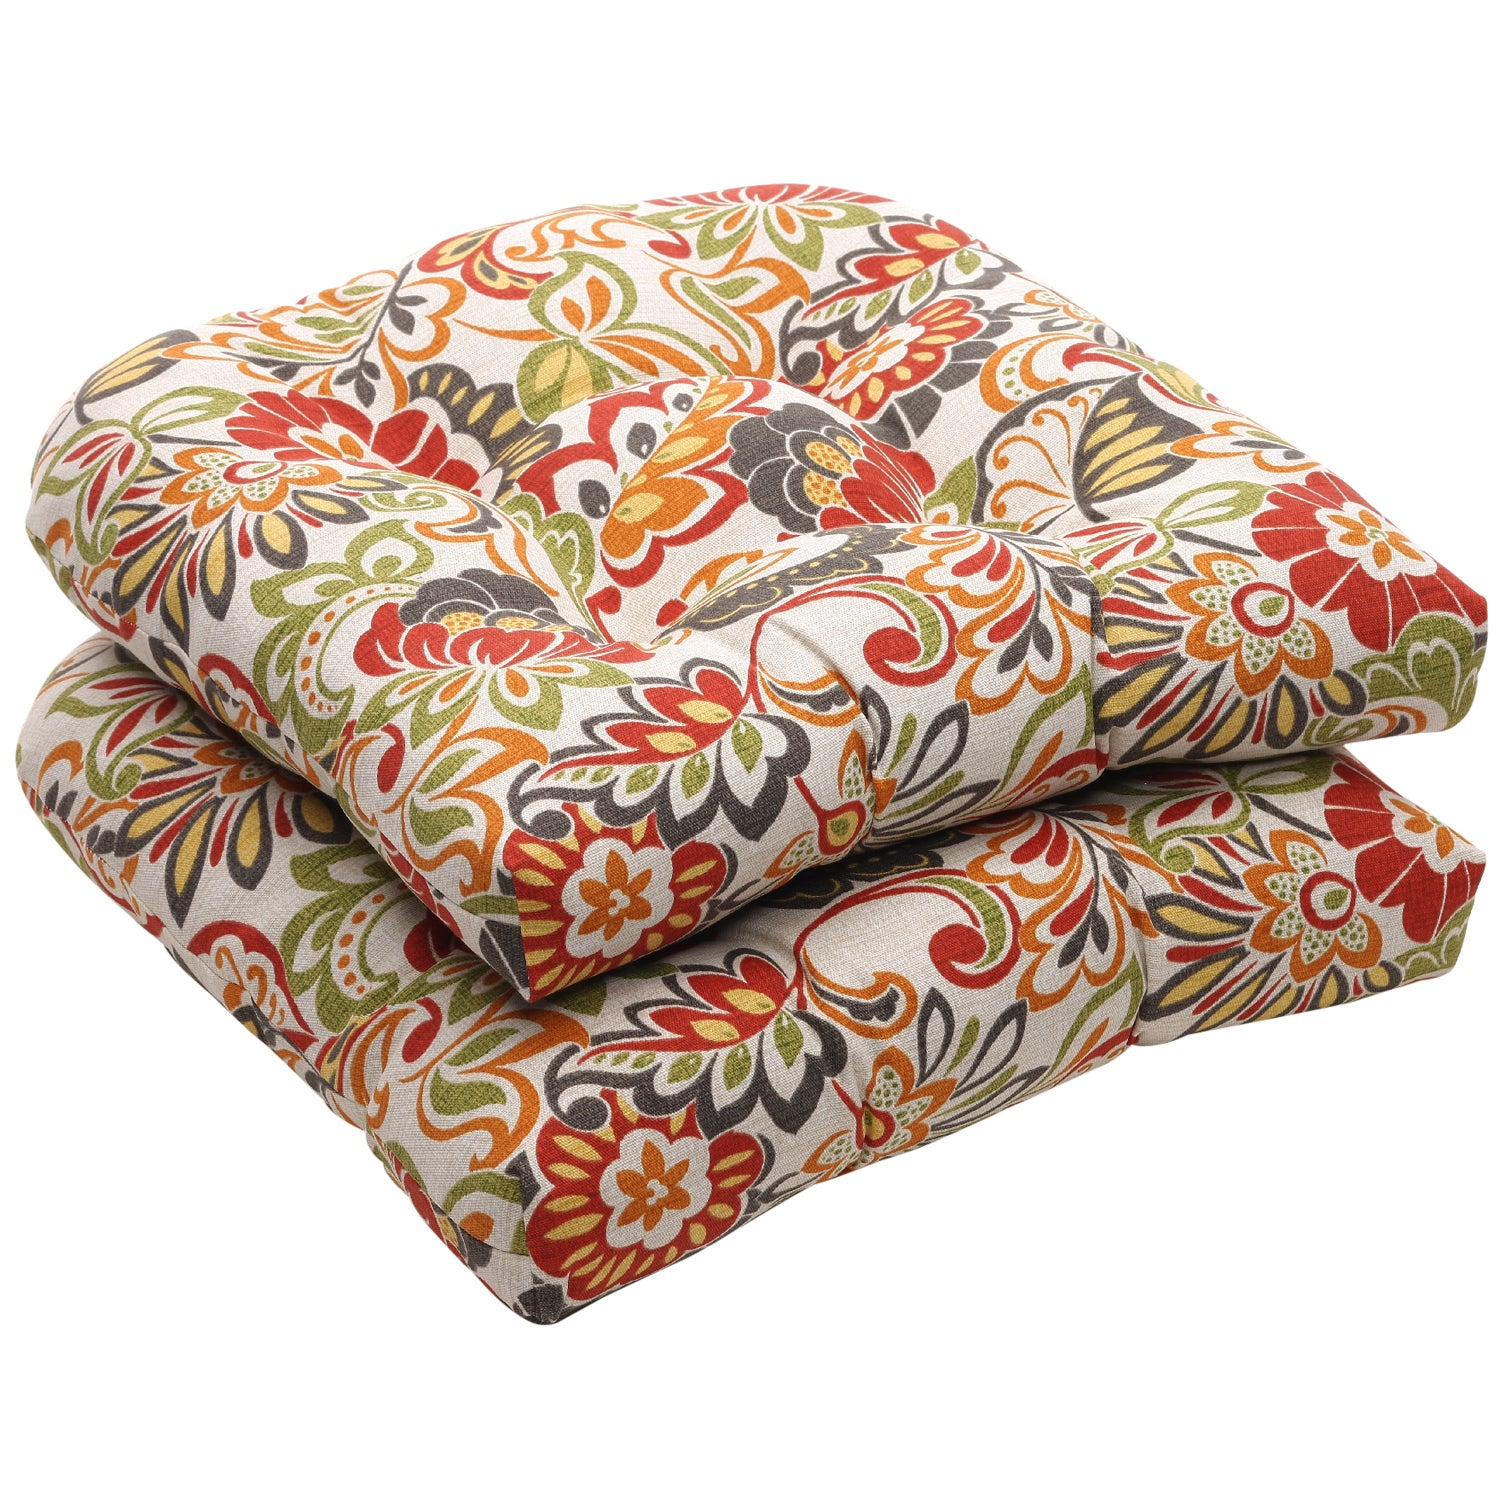 Outdoor Multicolored Floral Wicker Seat Cushions Set of 2 Free Shipping Orders Over $45